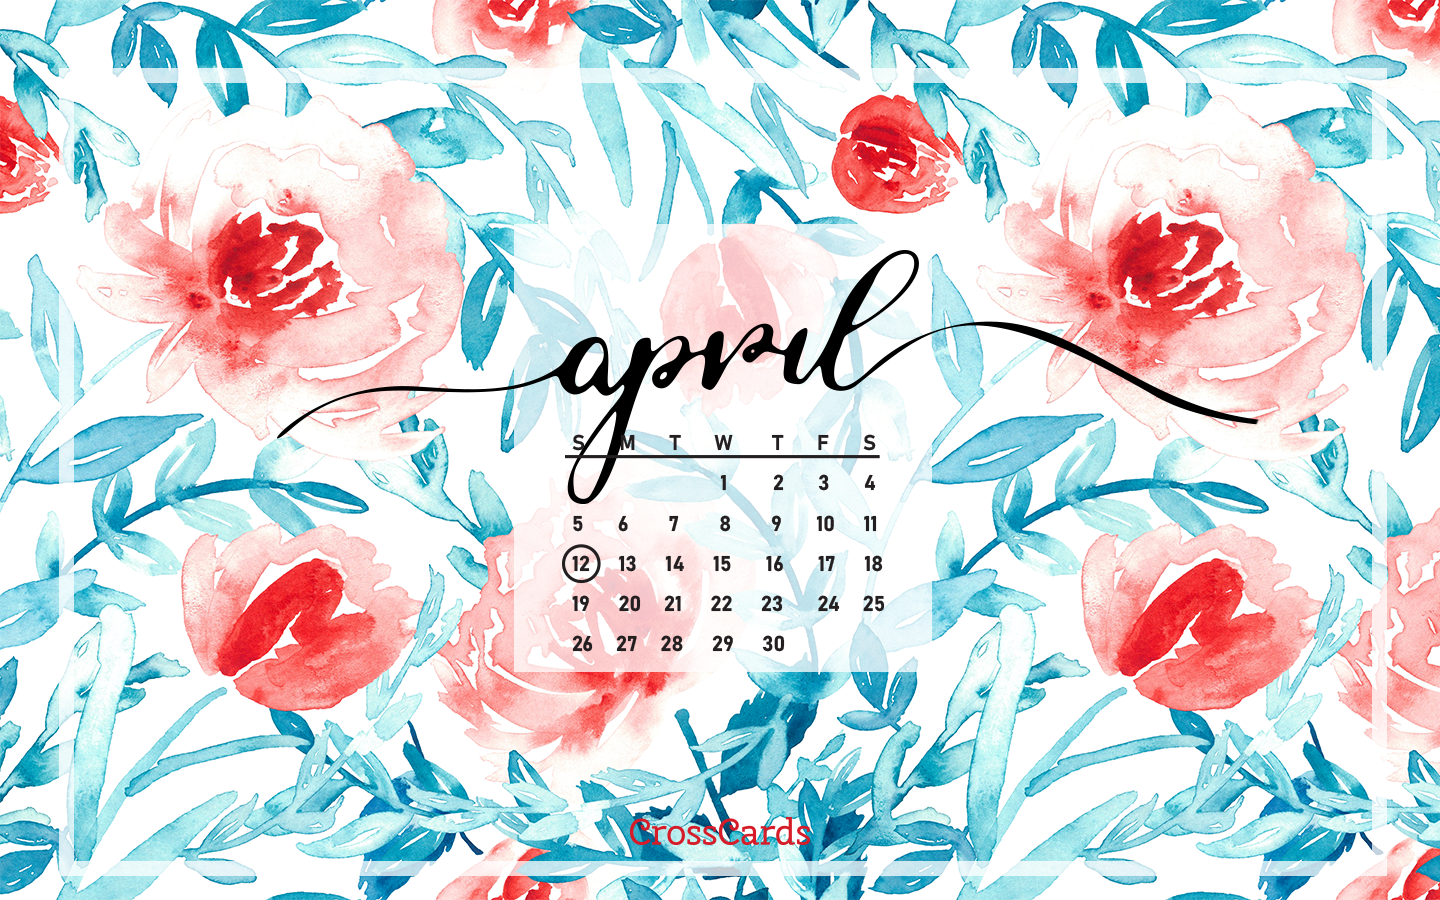 April 2020 - Watercolor mobile phone wallpaper